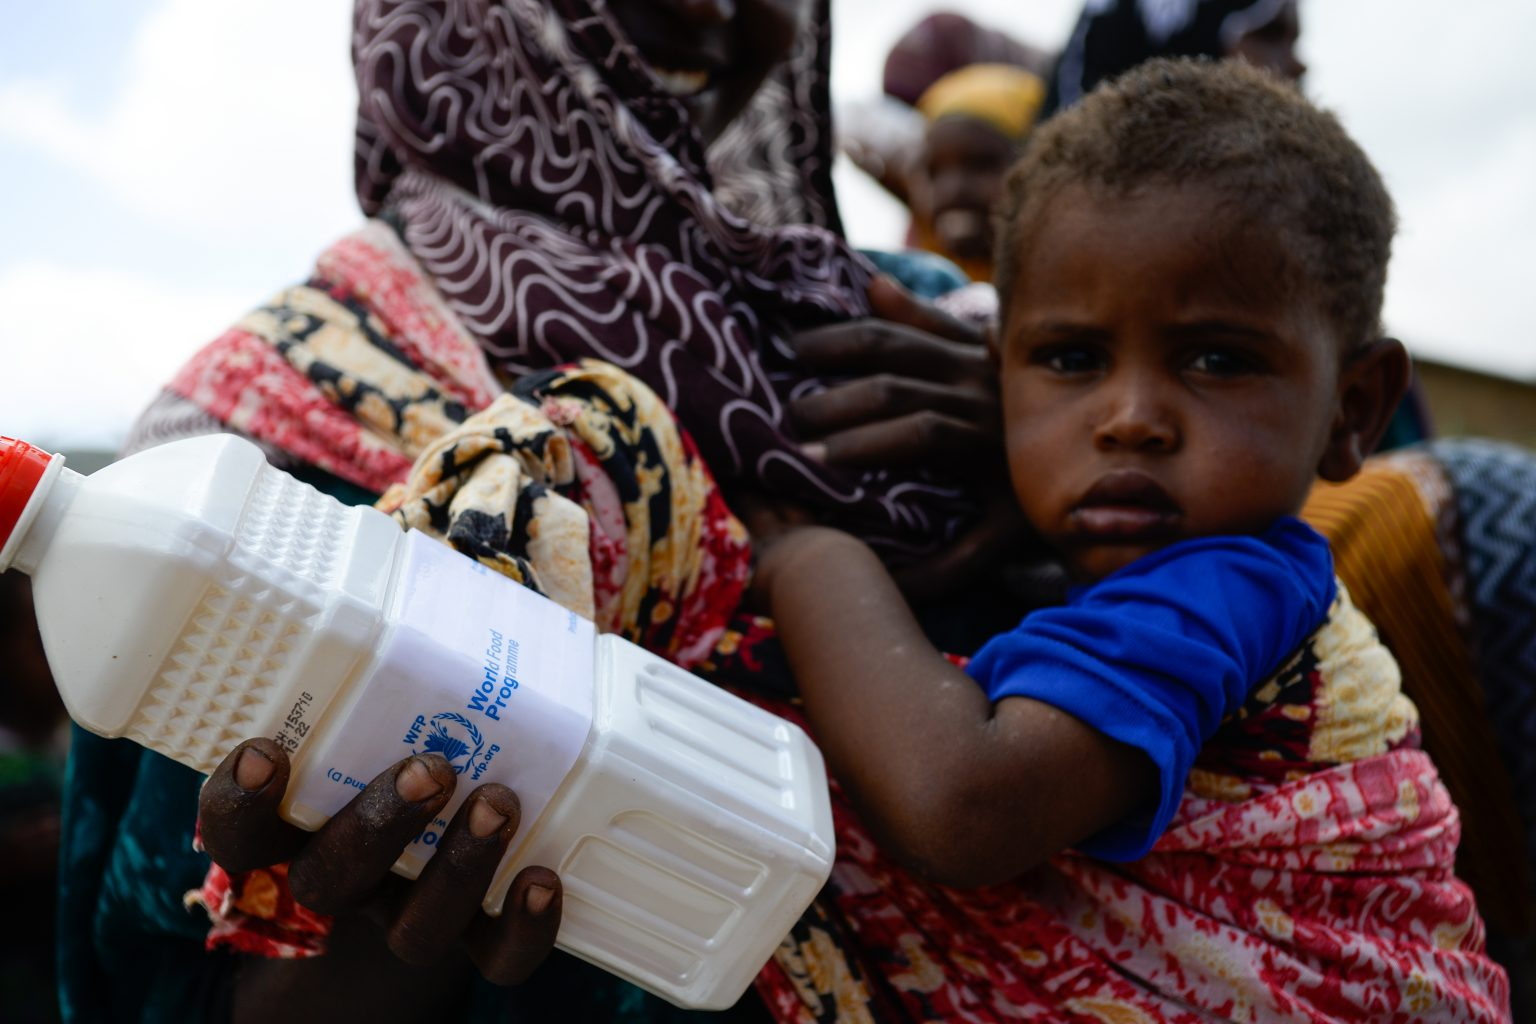 A young child in his mother's arms, as she also holds a bottle of WFP-issued vegetable oil